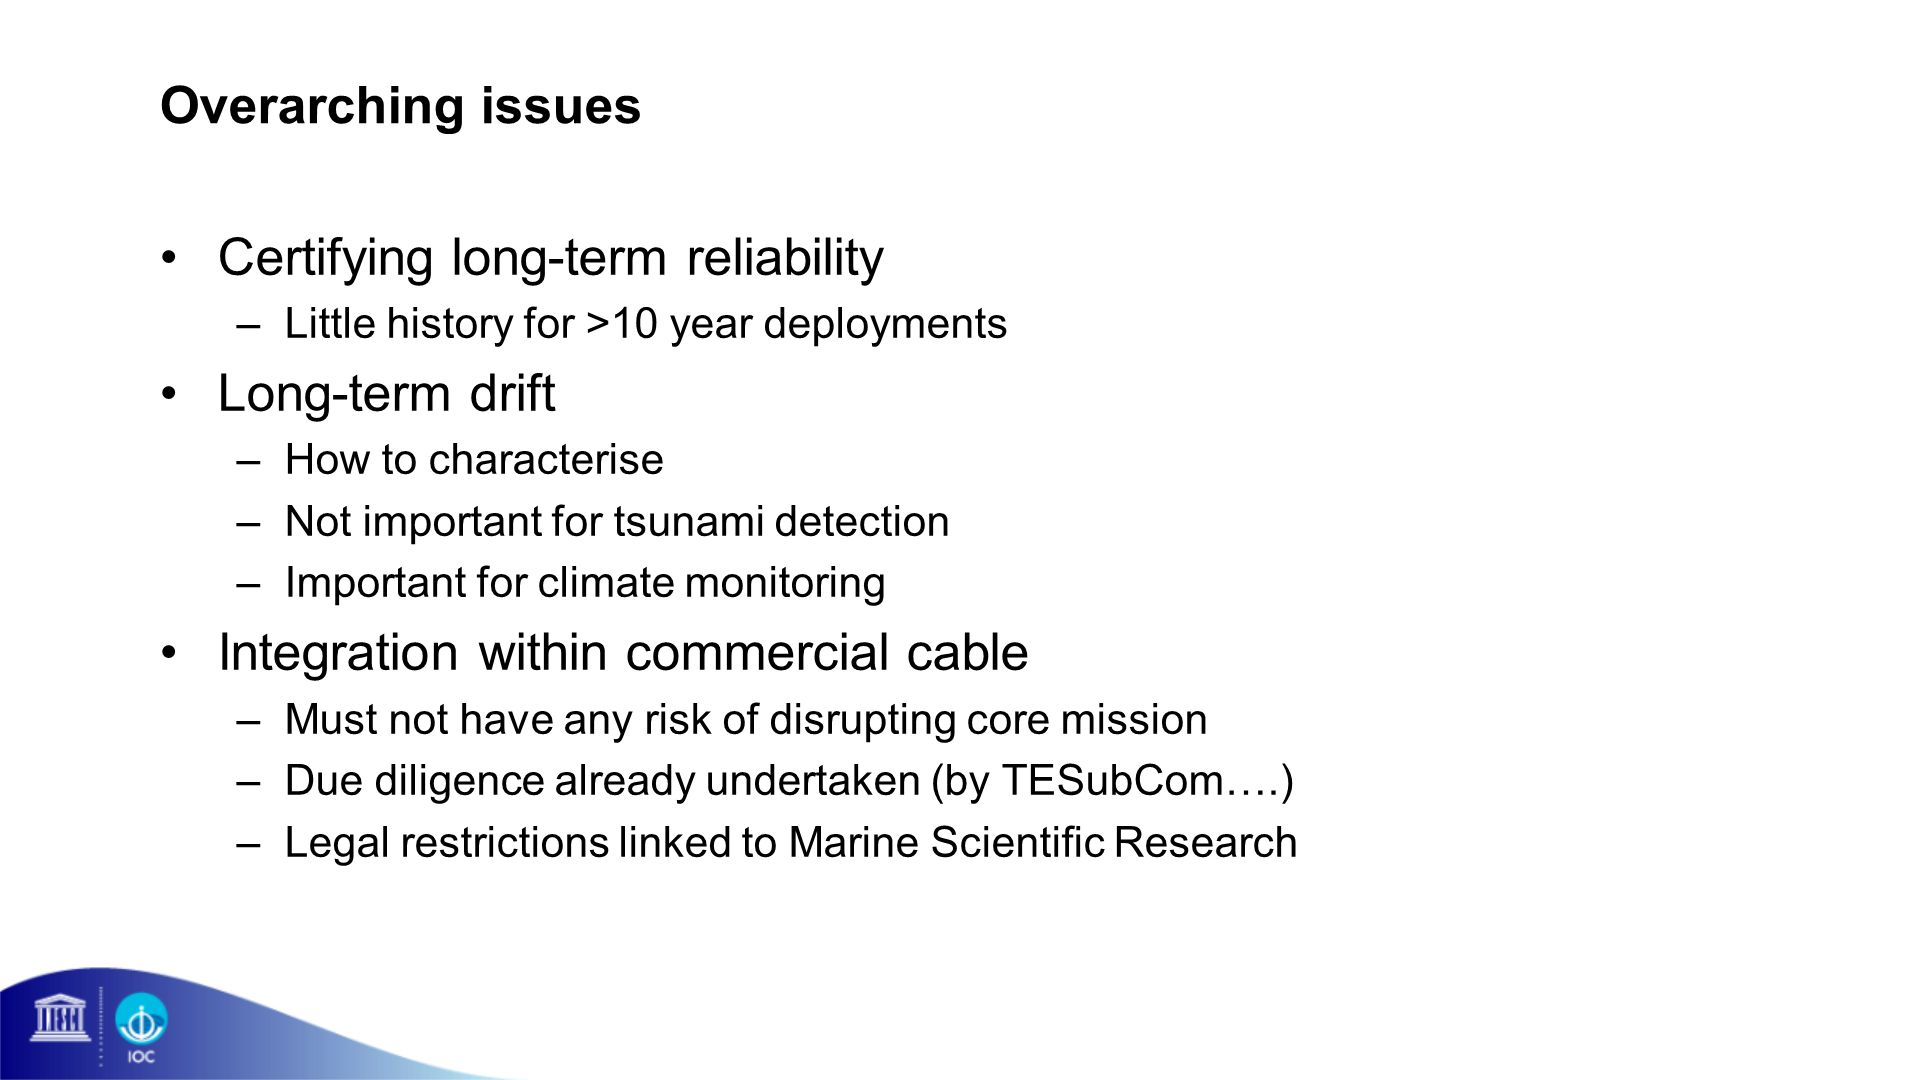 Overarching issues Certifying long-term reliability –Little history for >10 year deployments Long-term drift –How to characterise –Not important for tsunami detection –Important for climate monitoring Integration within commercial cable –Must not have any risk of disrupting core mission –Due diligence already undertaken (by TESubCom….) –Legal restrictions linked to Marine Scientific Research